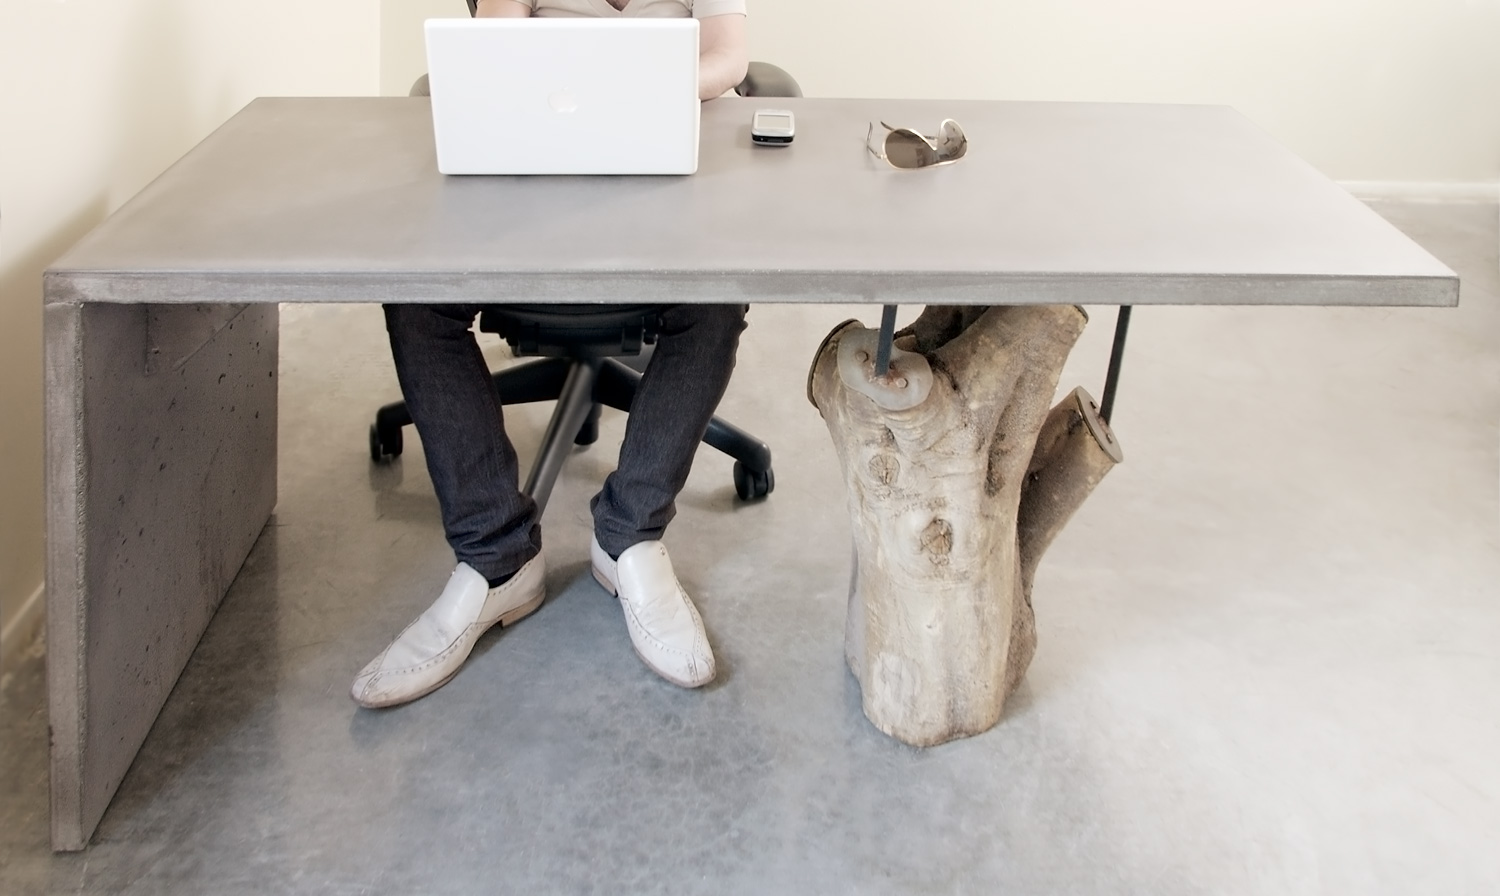 An artistic concrete desk with a tree stump leg supporting one end